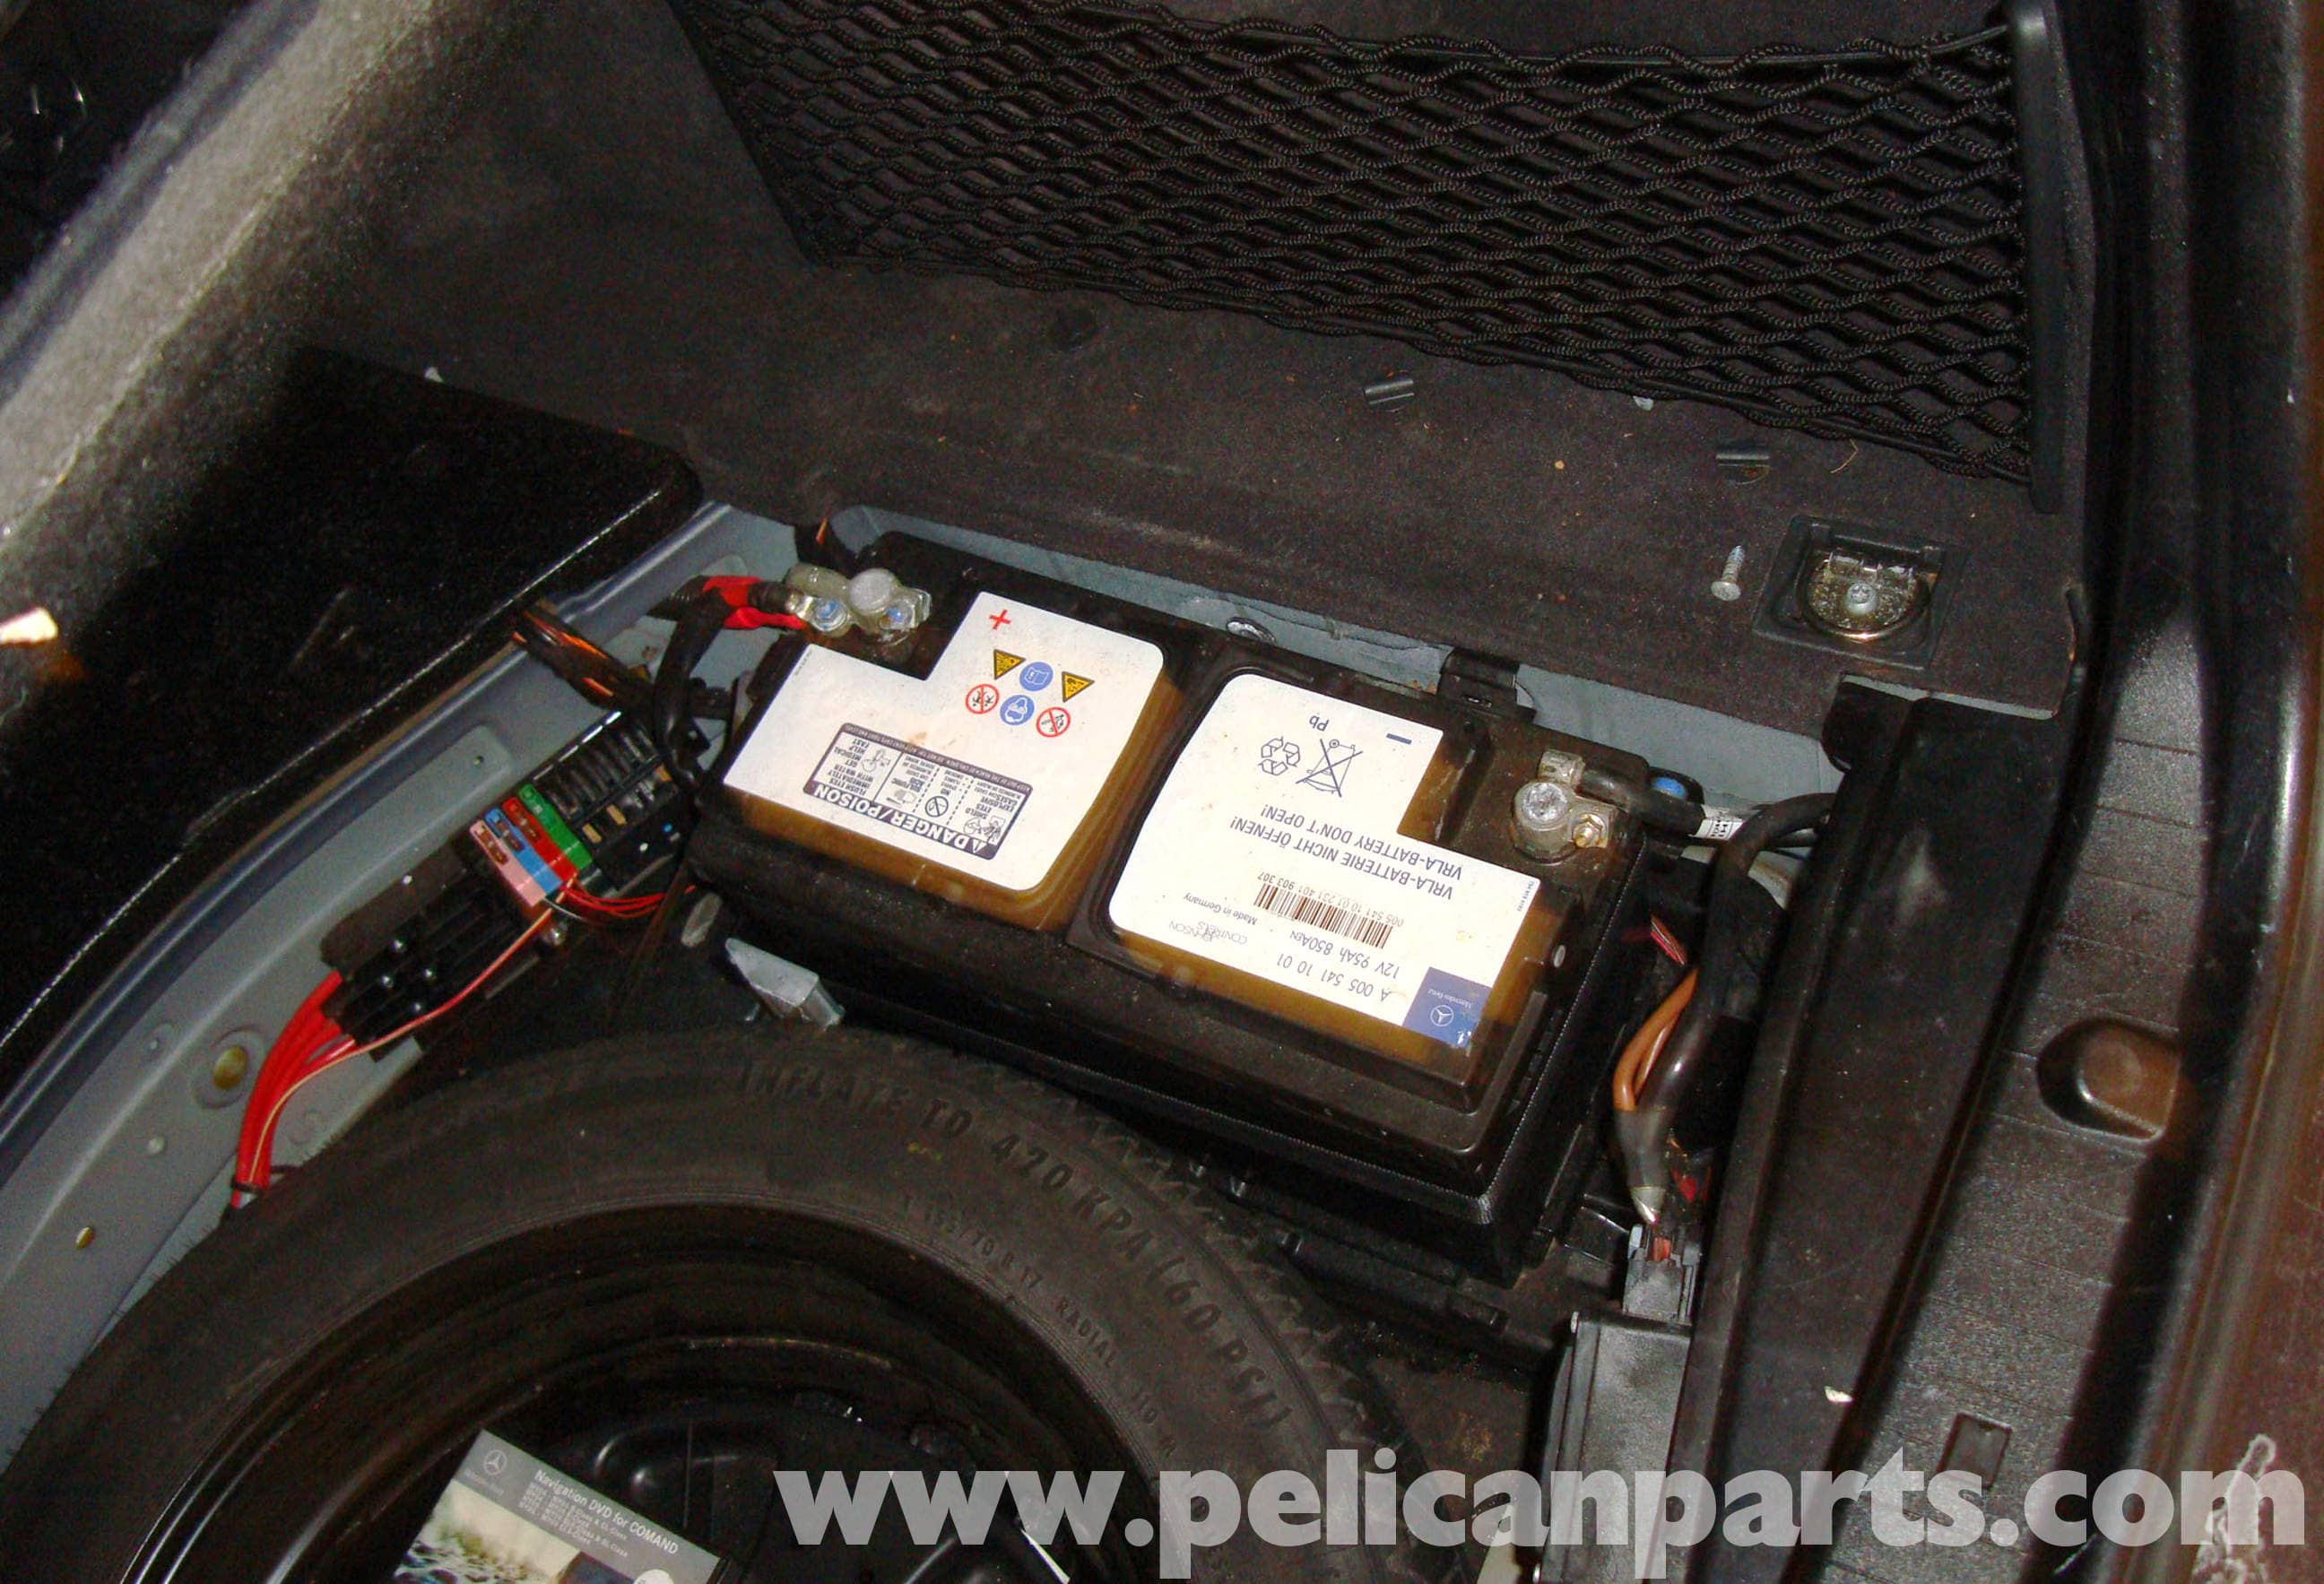 Mercedes-Benz W211 Battery Removal (2003-2009) E320, E500, E55 ... on mercedes-benz e550 cabriolet, mercedes-benz e550 convertible, 2011 mercedes e-class sedan, 2014 mercedes e-class sedan, mercedes-benz c350 sedan, 2015 e400 mercedes-benz sedan, mercedes-benz e350 sedan, mercedes-benz e550 car, mercedes-benz s-class sedan, mercedes-benz e550 wagon, mercedes-benz luxury sedan, 2007 mercedes-benz sedan, mercedes-benz 190 sedan, mercedes-benz e250 sedan, mercedes s500 sedan, mercedes-benz e550 amg, mercedes-benz e550 luxury, 2011 mercedes e350 sedan, mercedes-benz c230 sport sedan, 2009 mercedes e350 sedan,